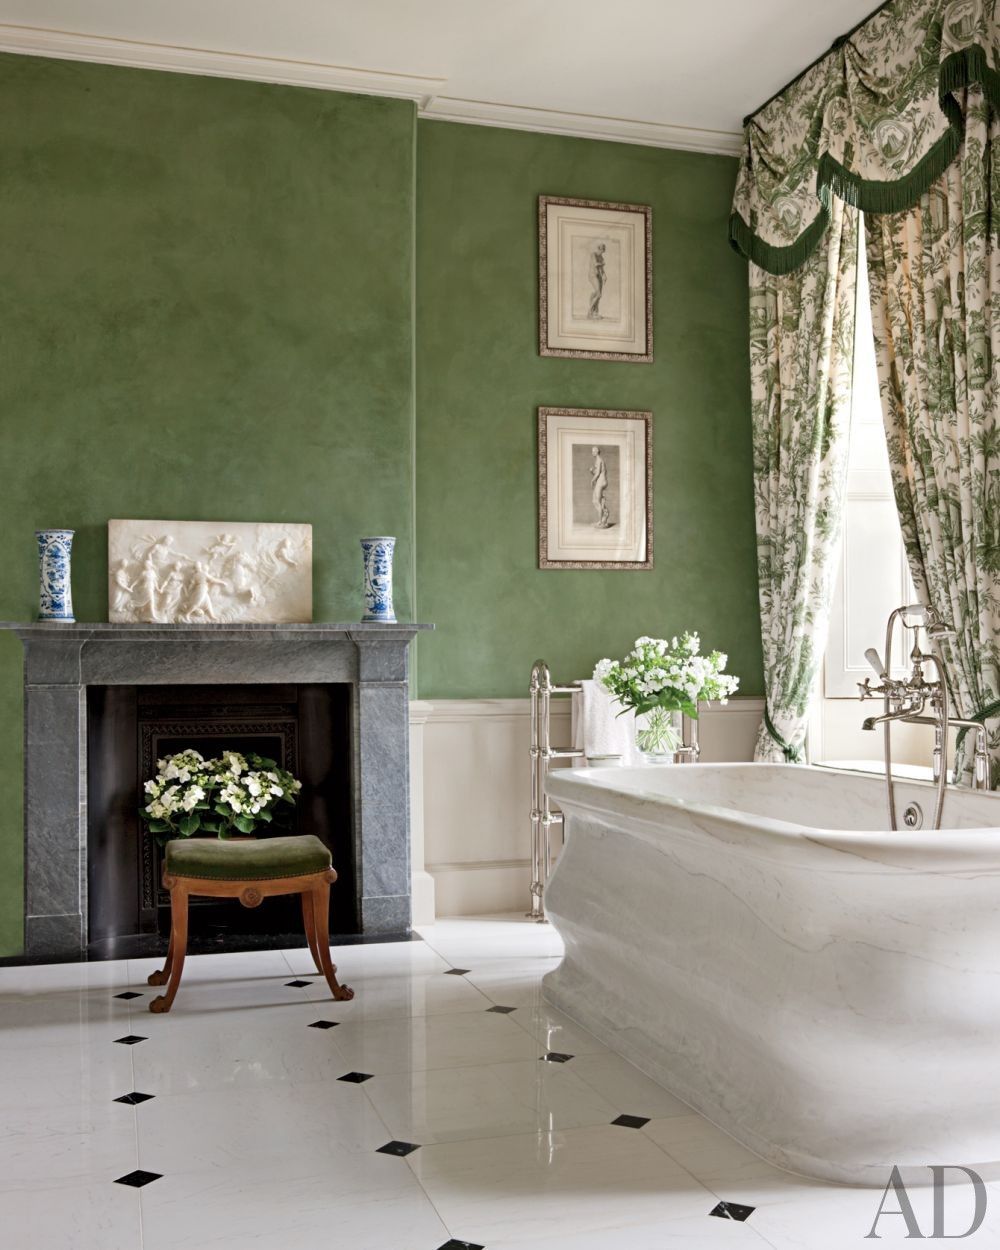 Traditional Bathroom by Spencer-Churchill Designs Inc. and Ptolemy Dean Architects Ltd. in Northamptonshire, England